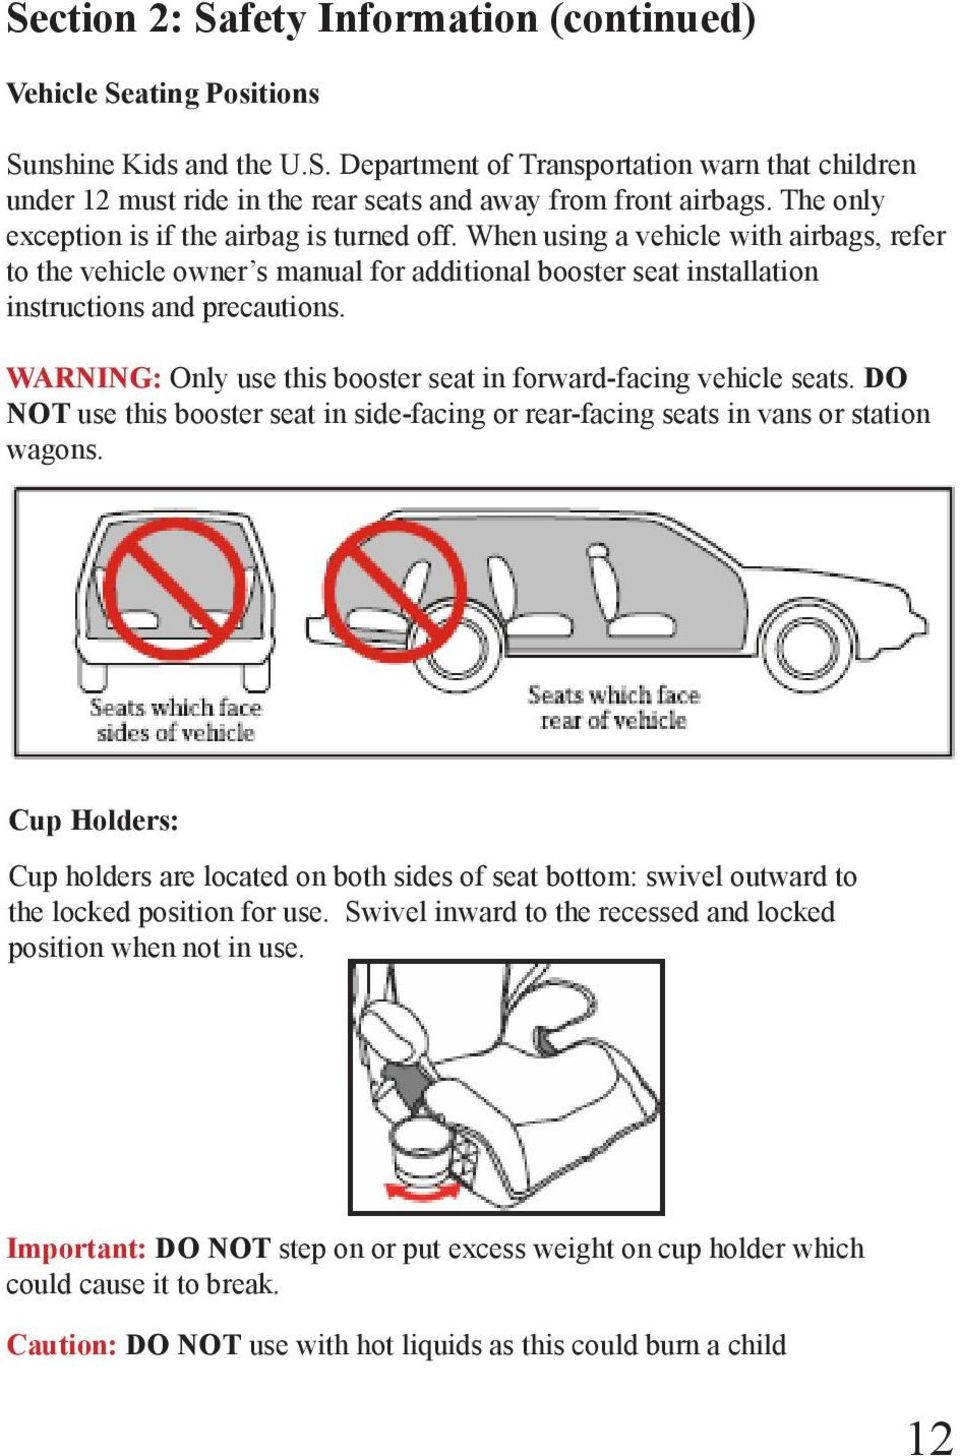 WARNING: Only use this booster seat in forward-facing vehicle seats. DO NOT use this booster seat in side-facing or rear-facing seats in vans or station wagons.